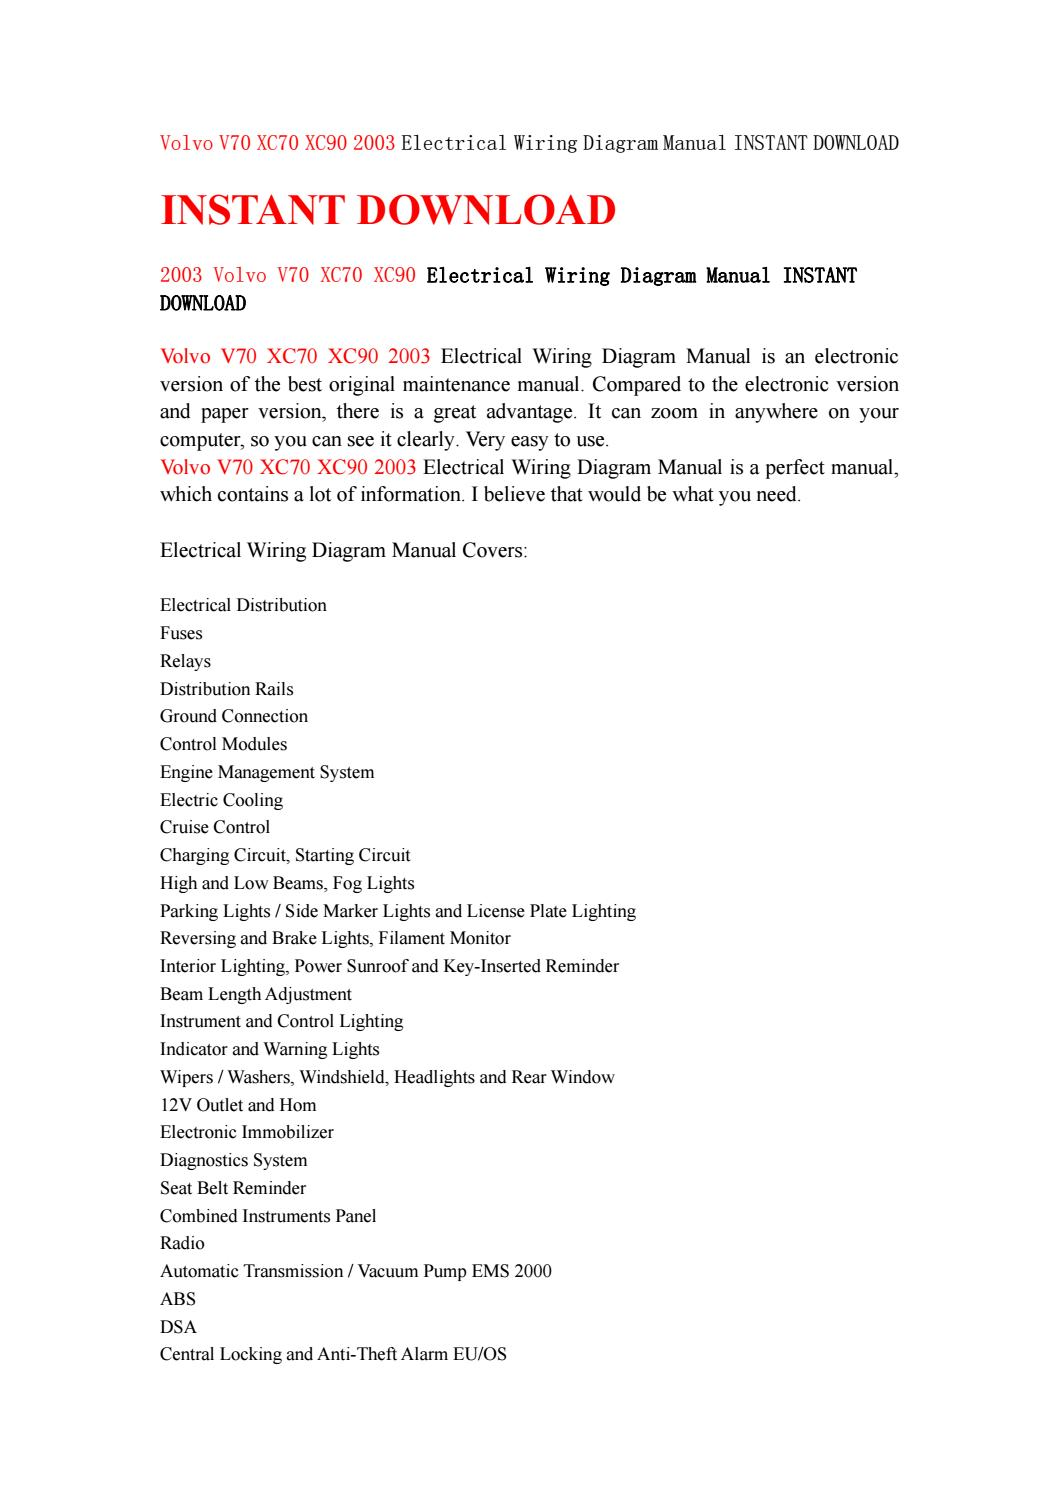 Volvo v70 xc70 xc90 2003 electrical wiring diagram manual instant download  by MJFMMSMMFdd - issuu